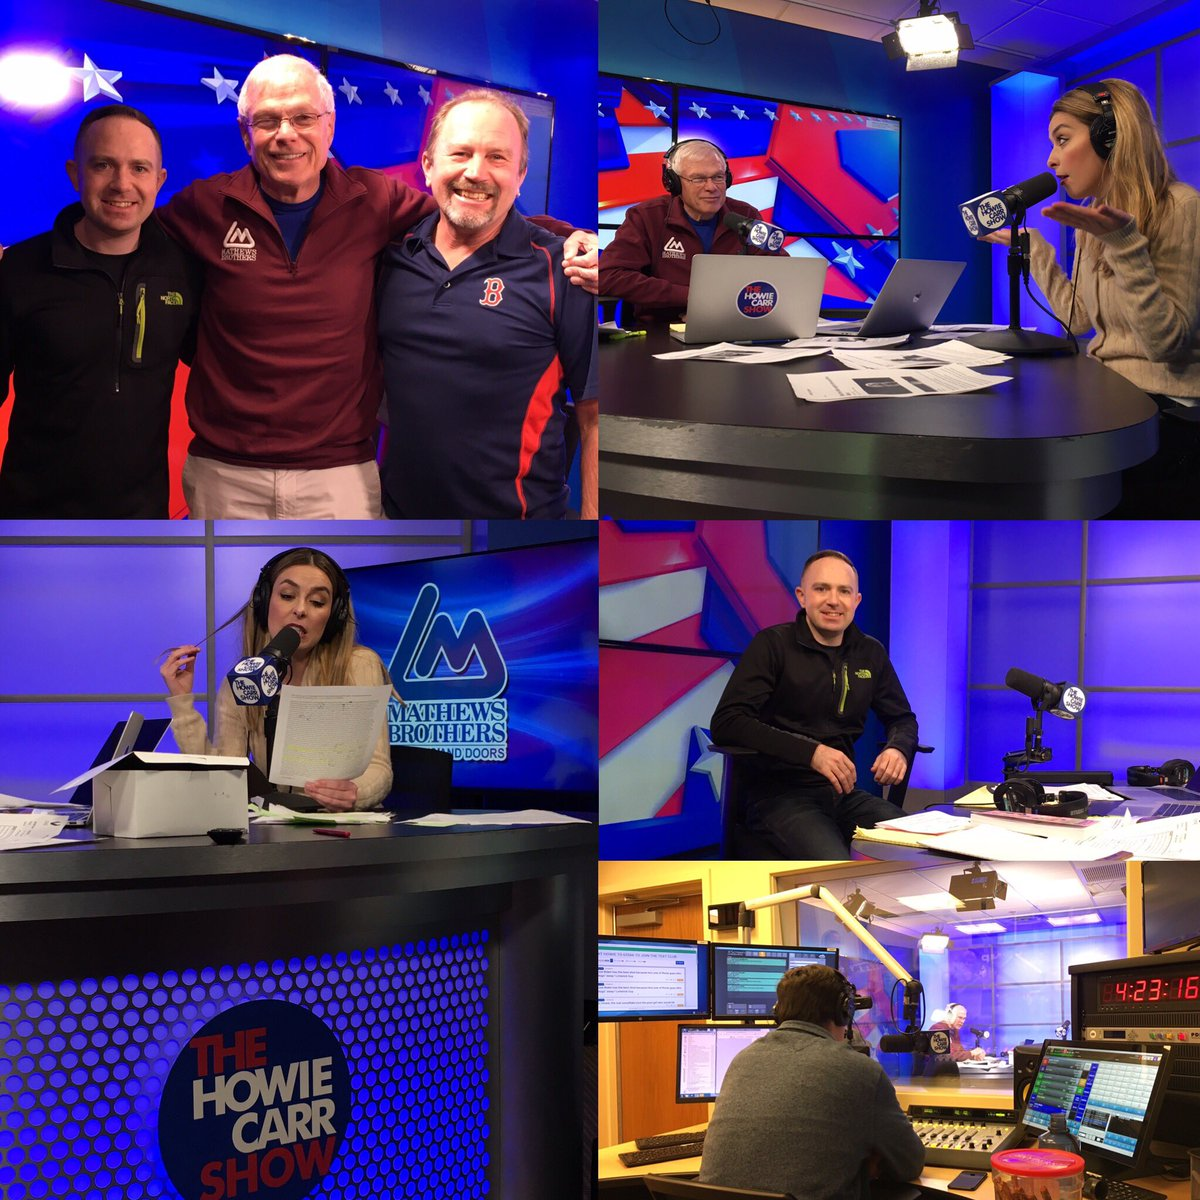 Had a great day in studio at the @HowieCarrShow! @G_CURLEY @BigSteve207 #MAGA